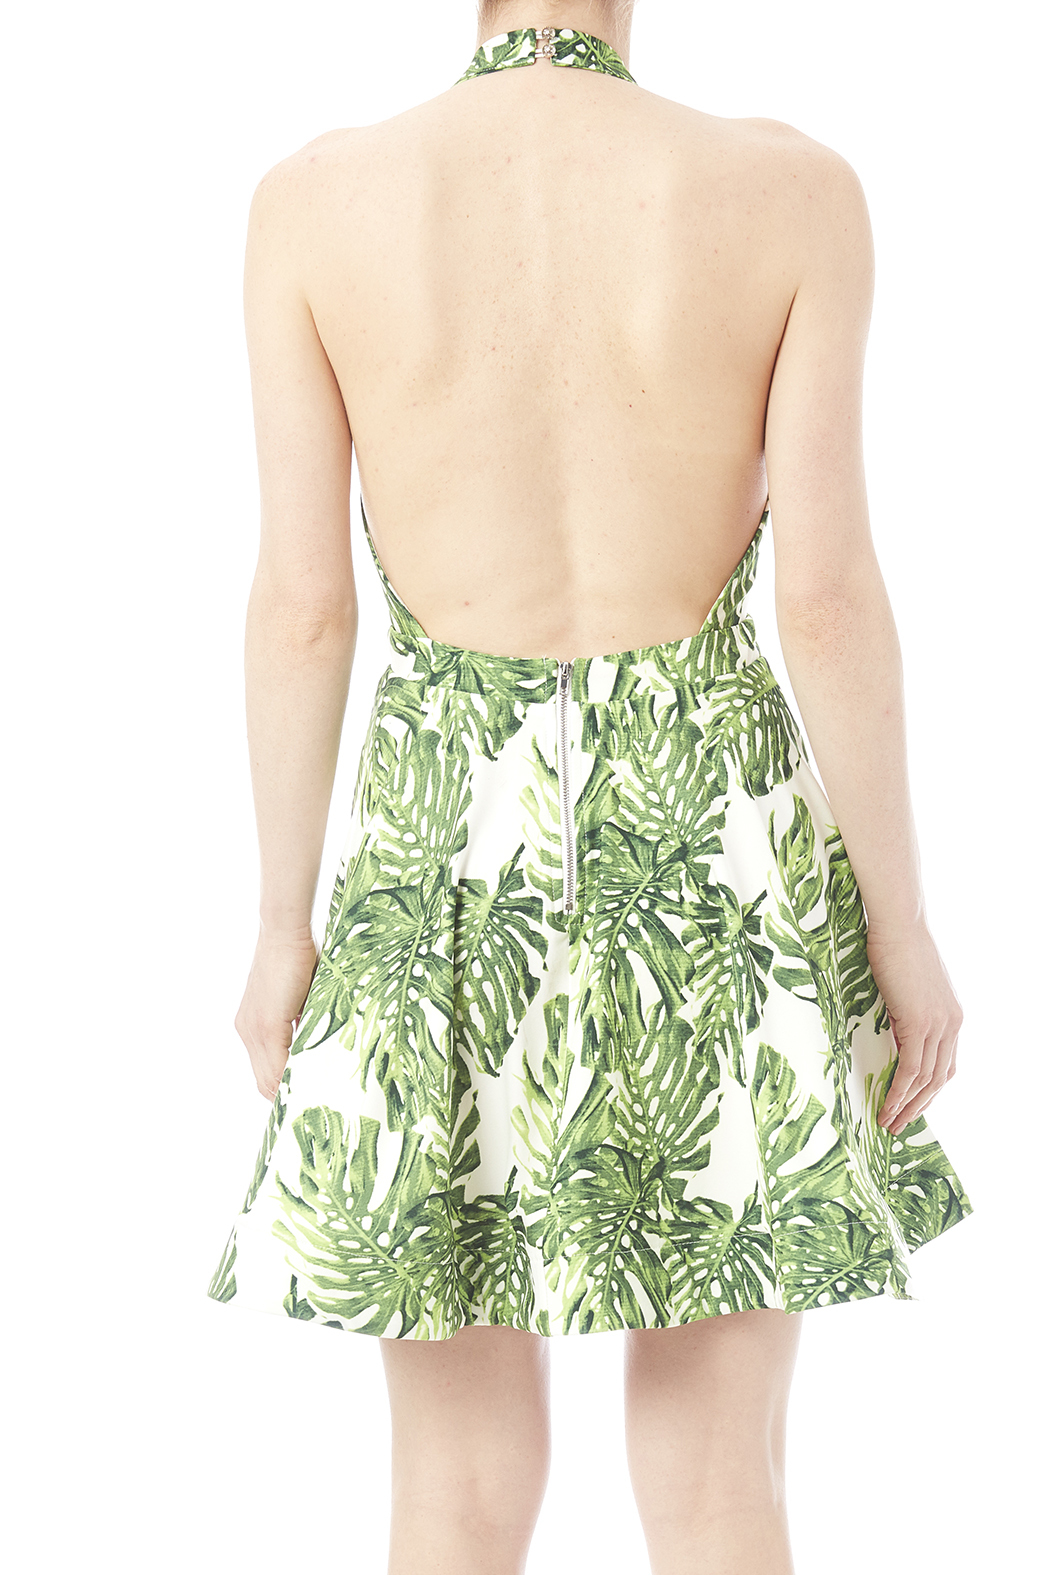 luxxel The Miriam Dress - Back Cropped Image